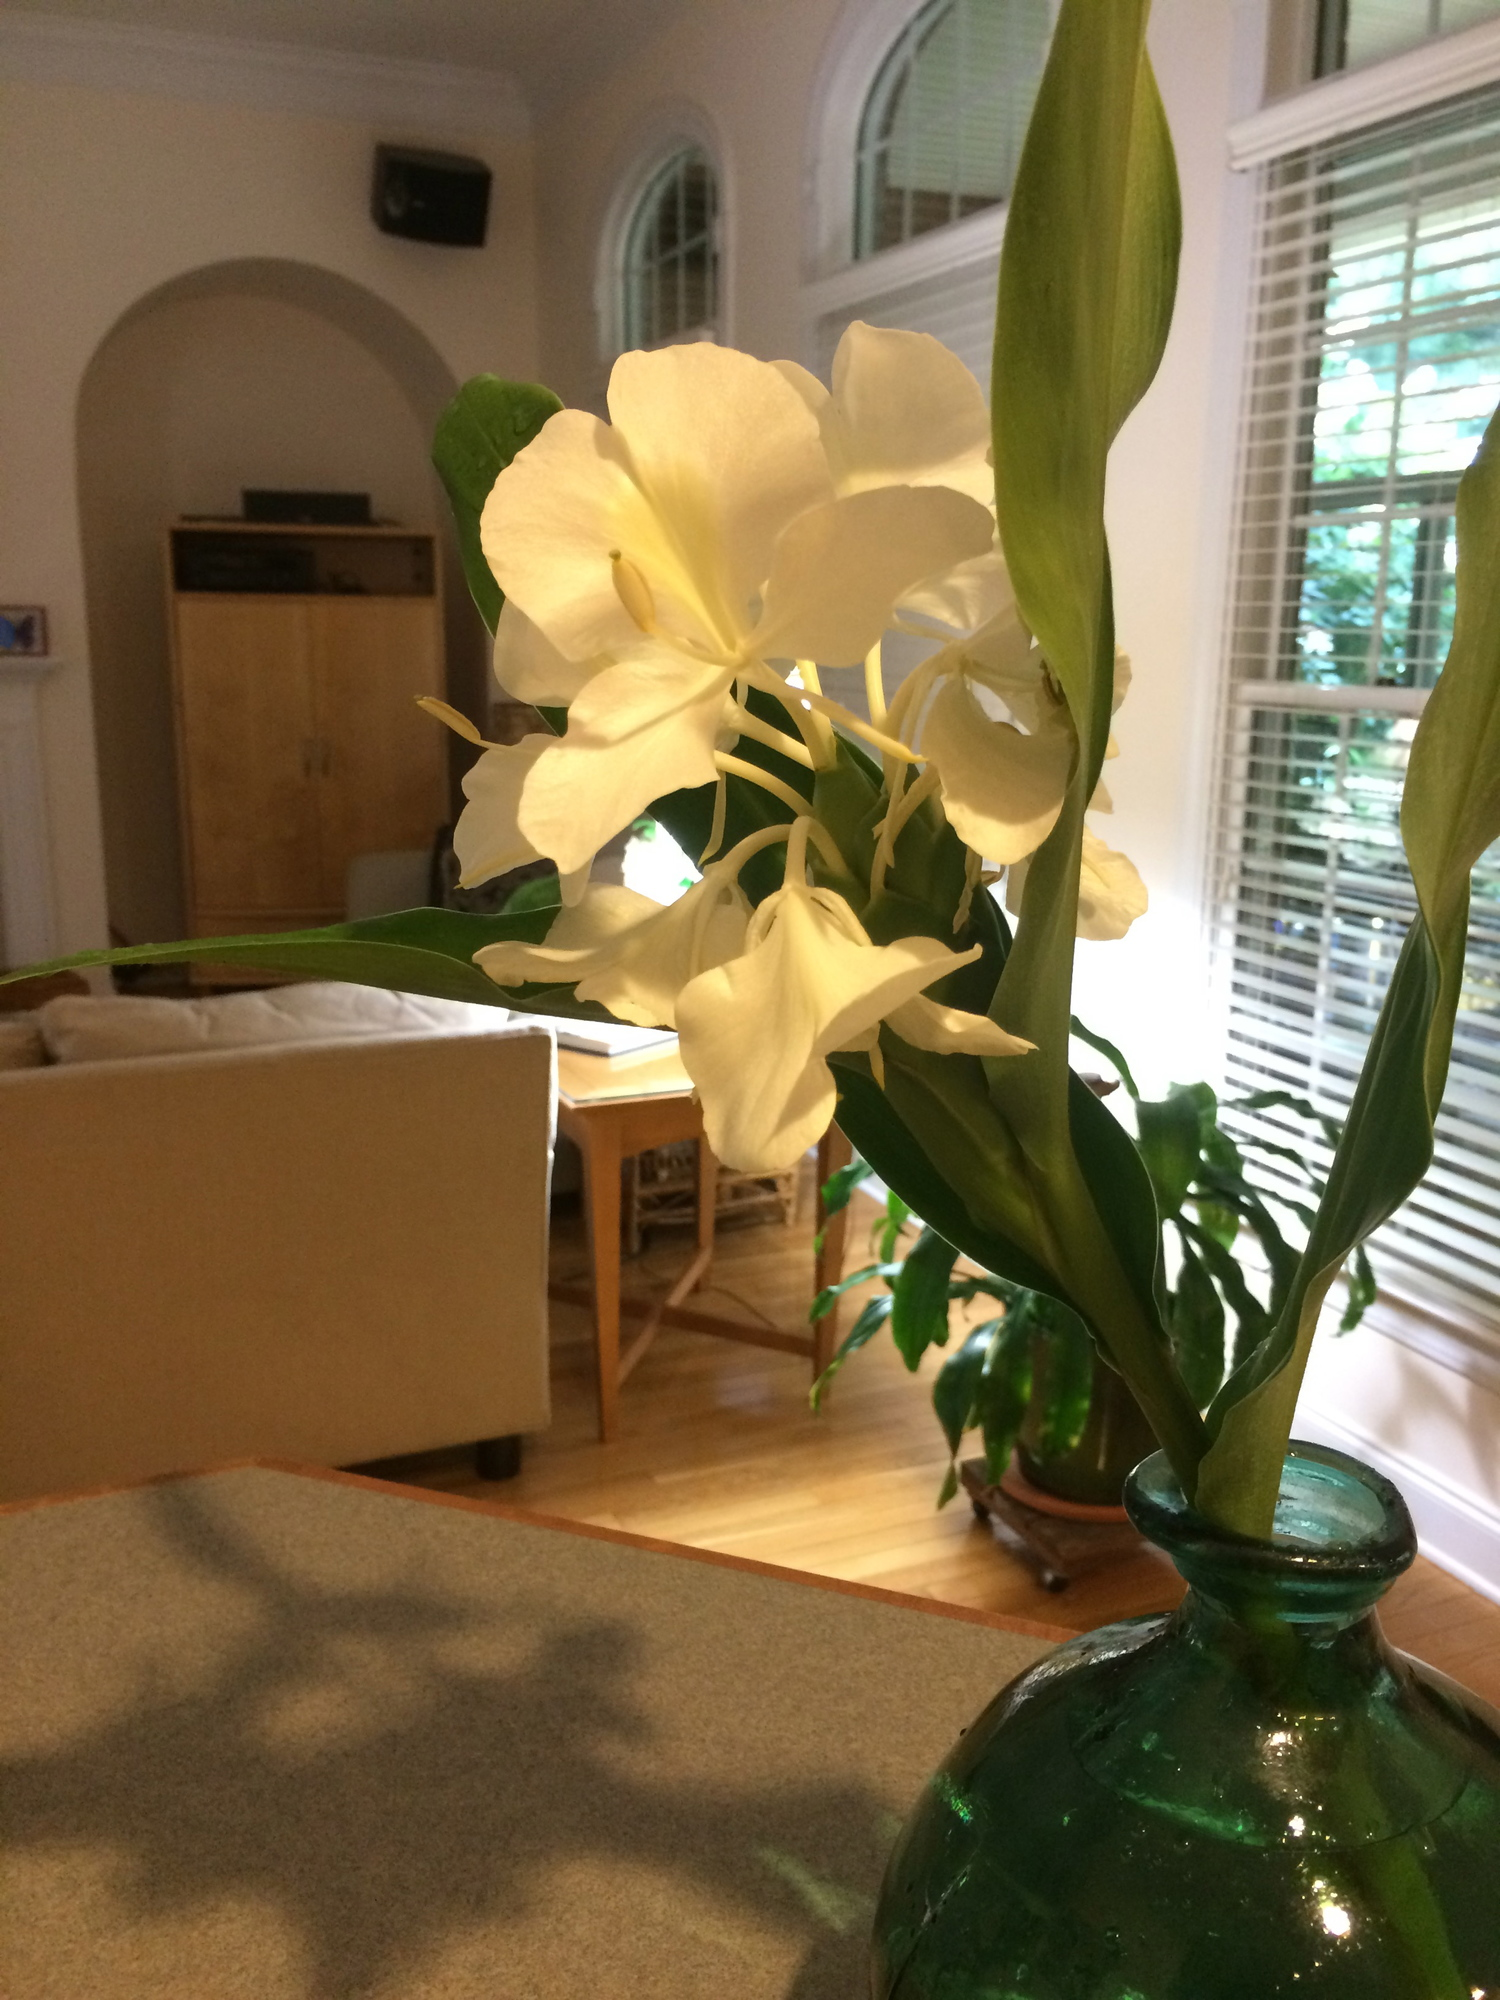 The Easiest Most Fragrant Cut Flower White Ginger Lily Stanleys